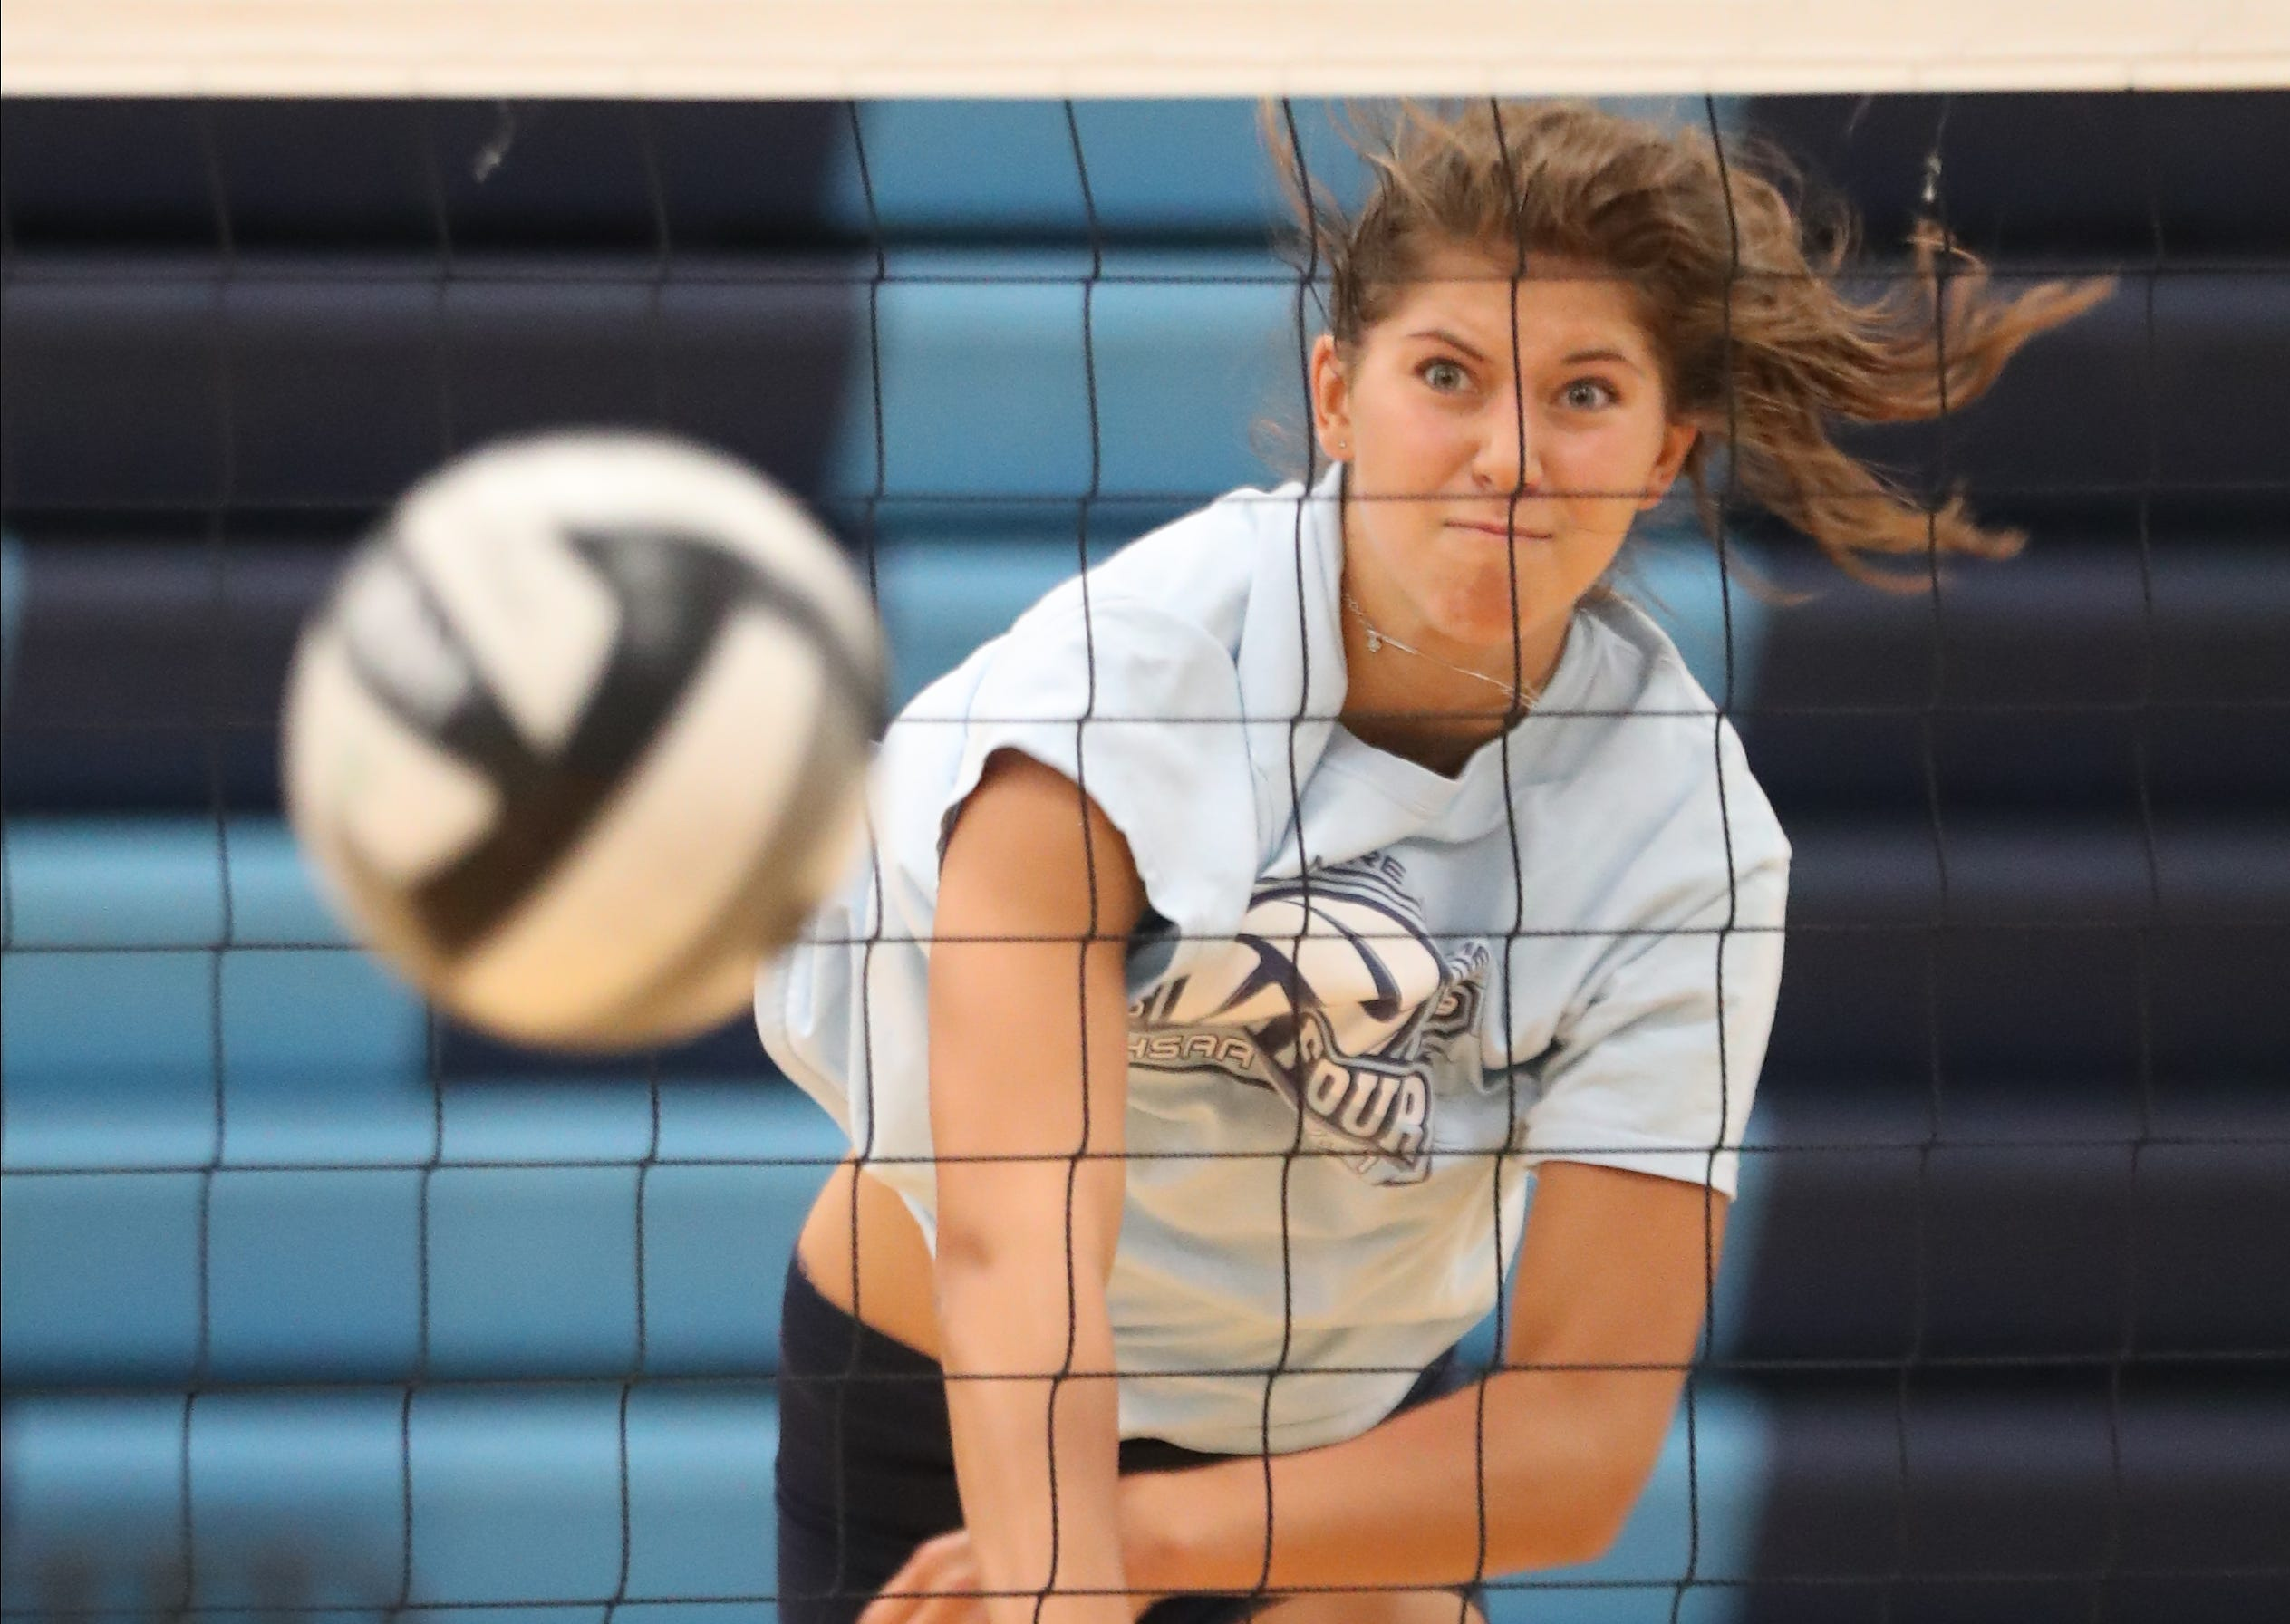 Mount Notre Dame player Carly Hendrickson gets to work during practice Wednesday, Aug. 5, 2020.